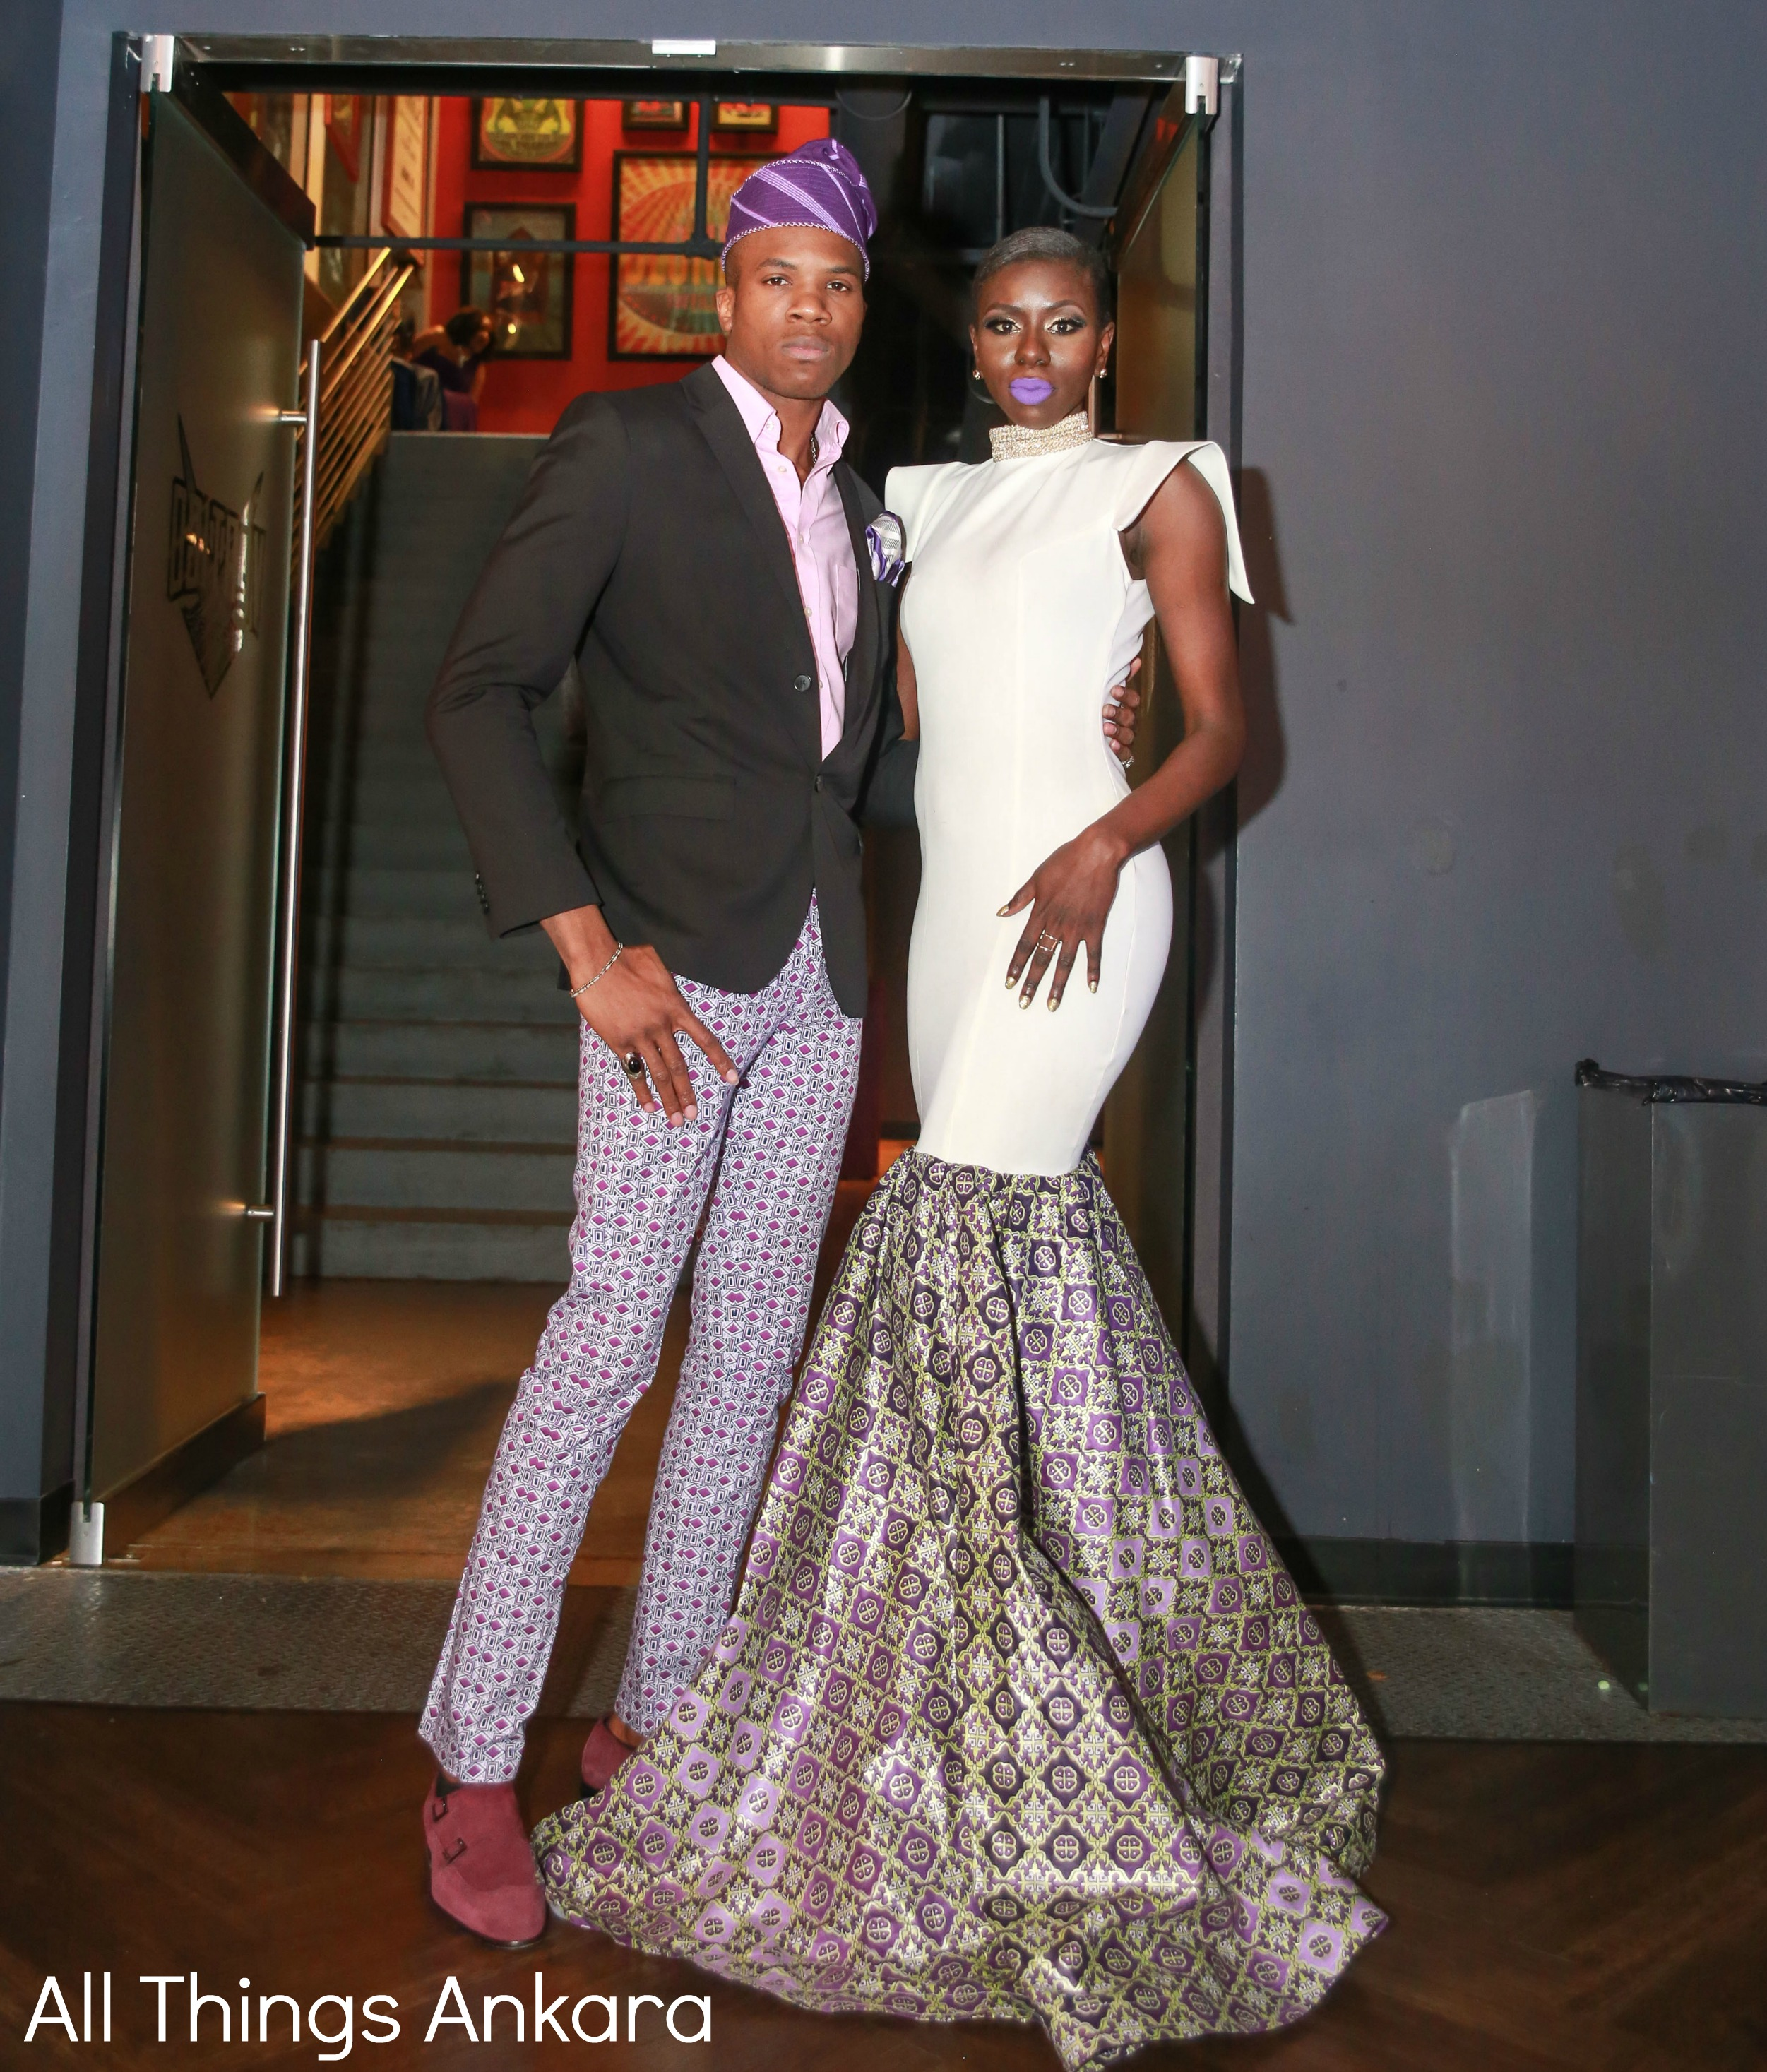 ball-gwb-commissions-best-dressed-couples-at-gwb-commissions-7th-annual-green-white-blue-ball-2016-4